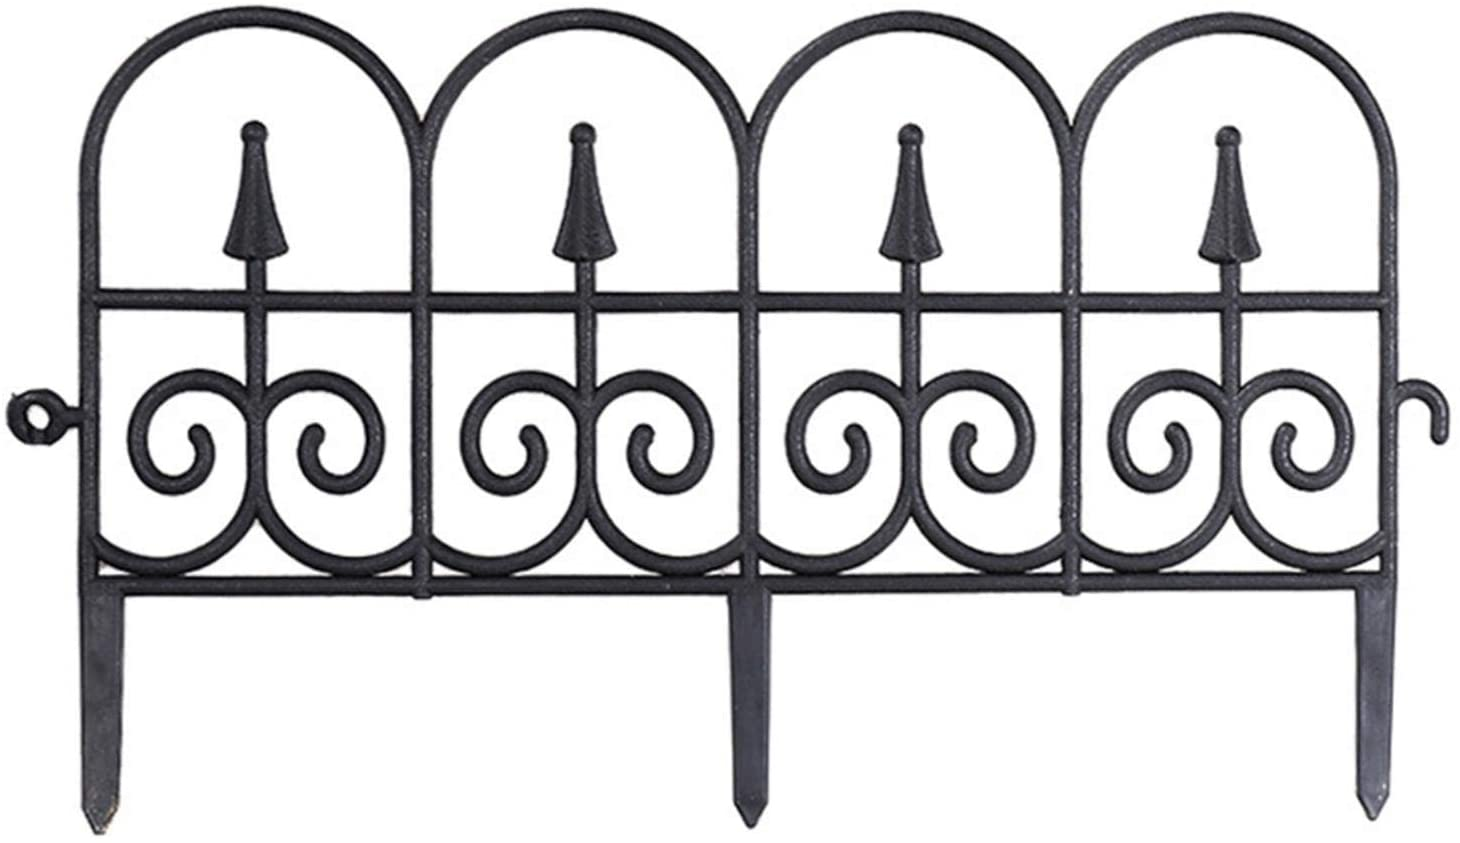 Xiaoling 5 Packs Decorative Garden Fence, 24 Inch Panels Outdoor Coated Metal Rustproof Landscape Wrought Iron Wire Border Folding Patio Barrier Fence Ornamental for Patio Landscape Flower Bed